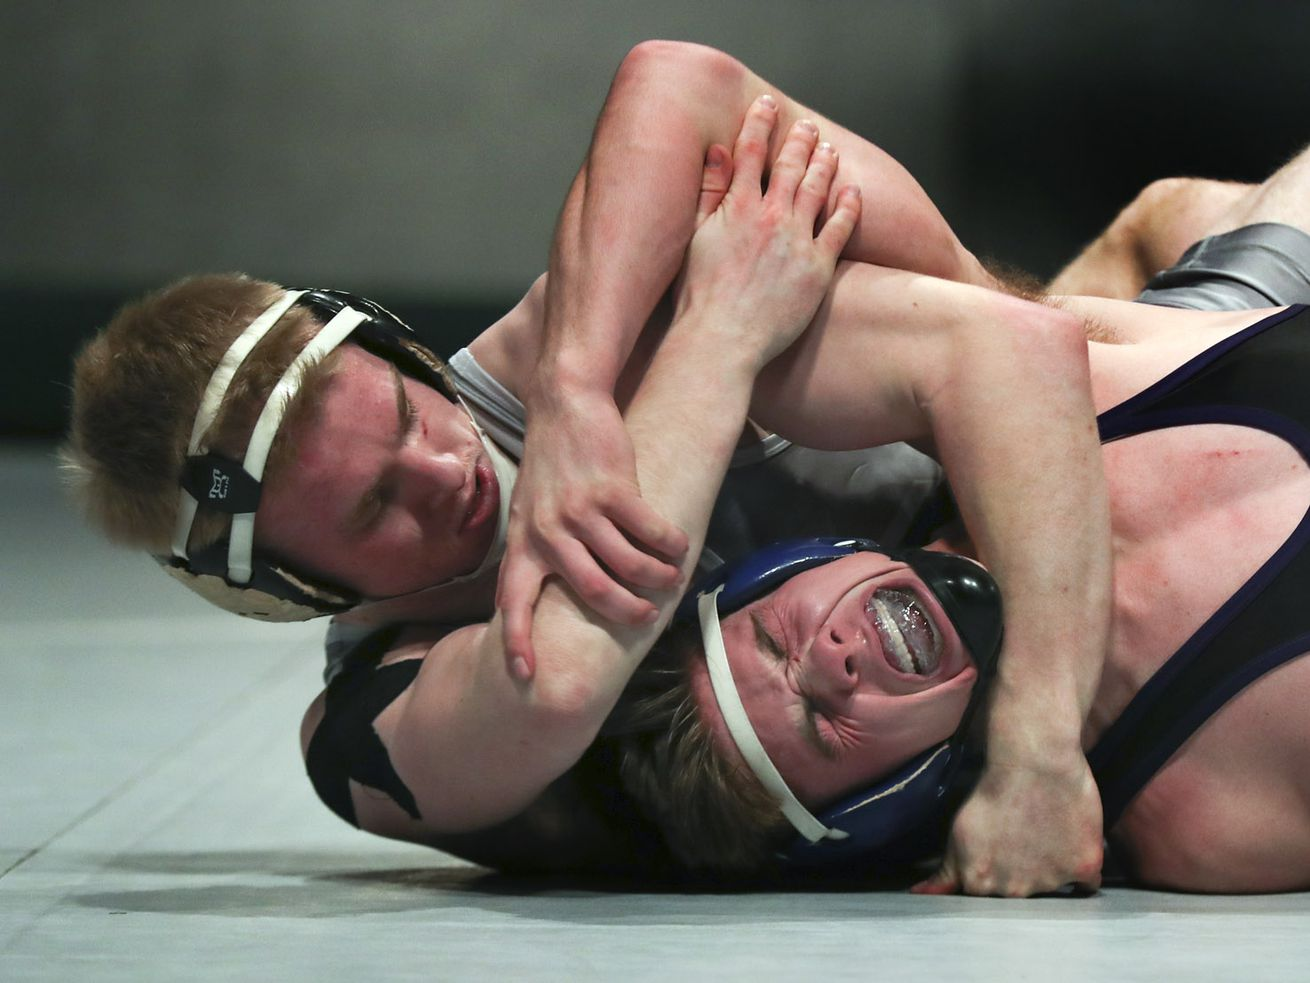 Pleasant Grove's Jake Richardson, left, pulls on North Summit's Tyler Scheurn during the Utah All-Star Dual wrestling matches at UVU's UCCU Center in Orem on Tuesday, Jan. 14, 2020.